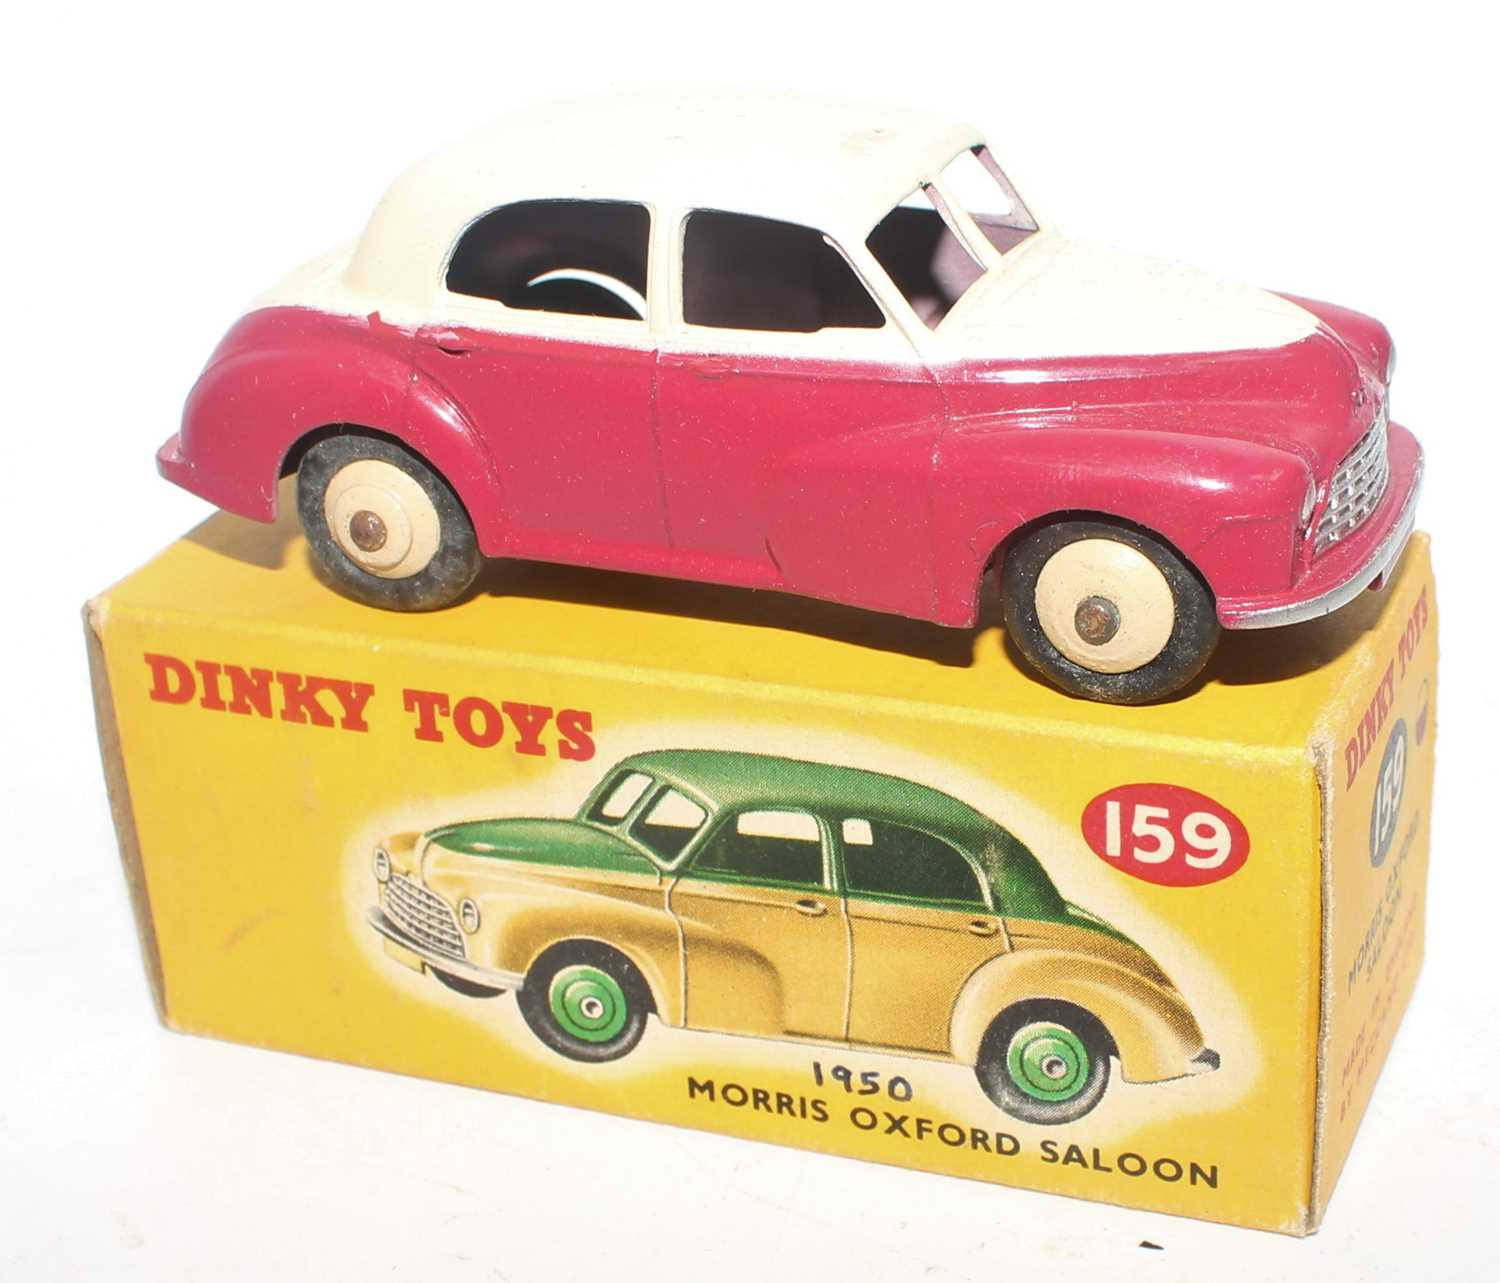 Dinky Toys No. 159 Morris Oxford saloon comprising of cream upper body with cerise lower body and - Image 2 of 2